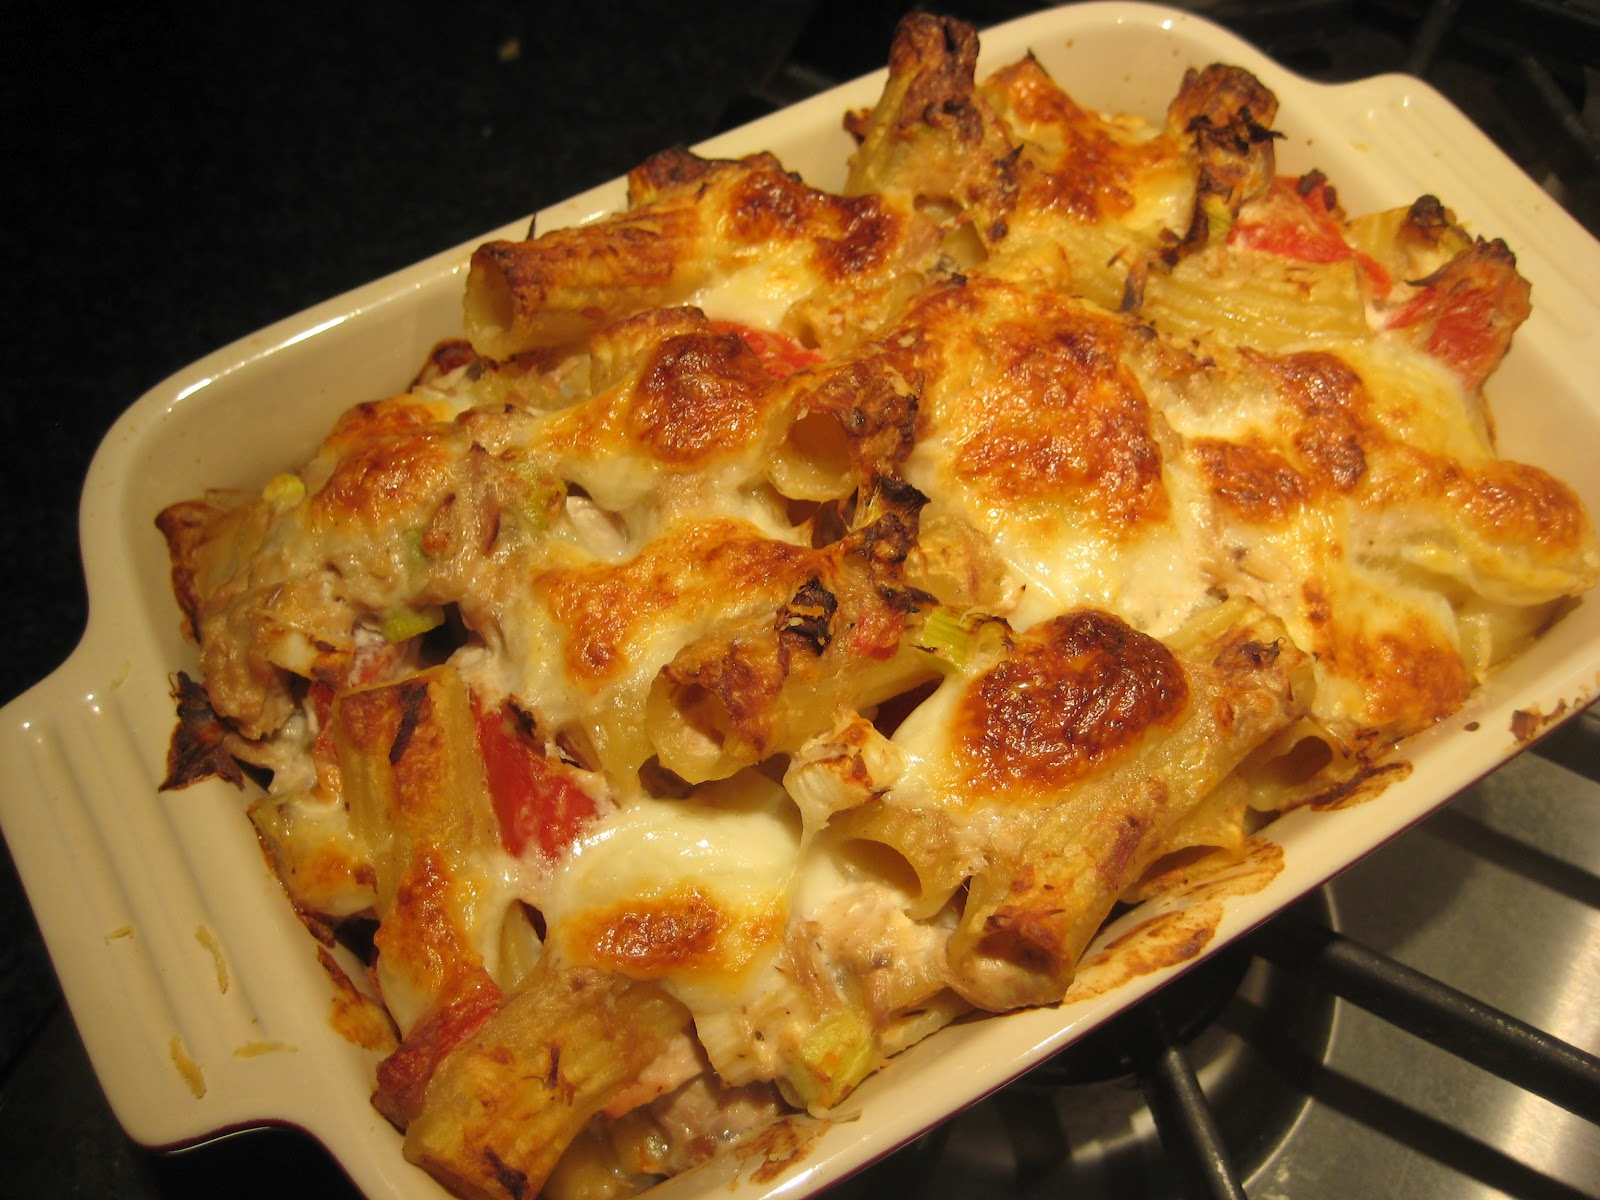 Lemon and Cheese: Tuna and Pepper Pasta Bake